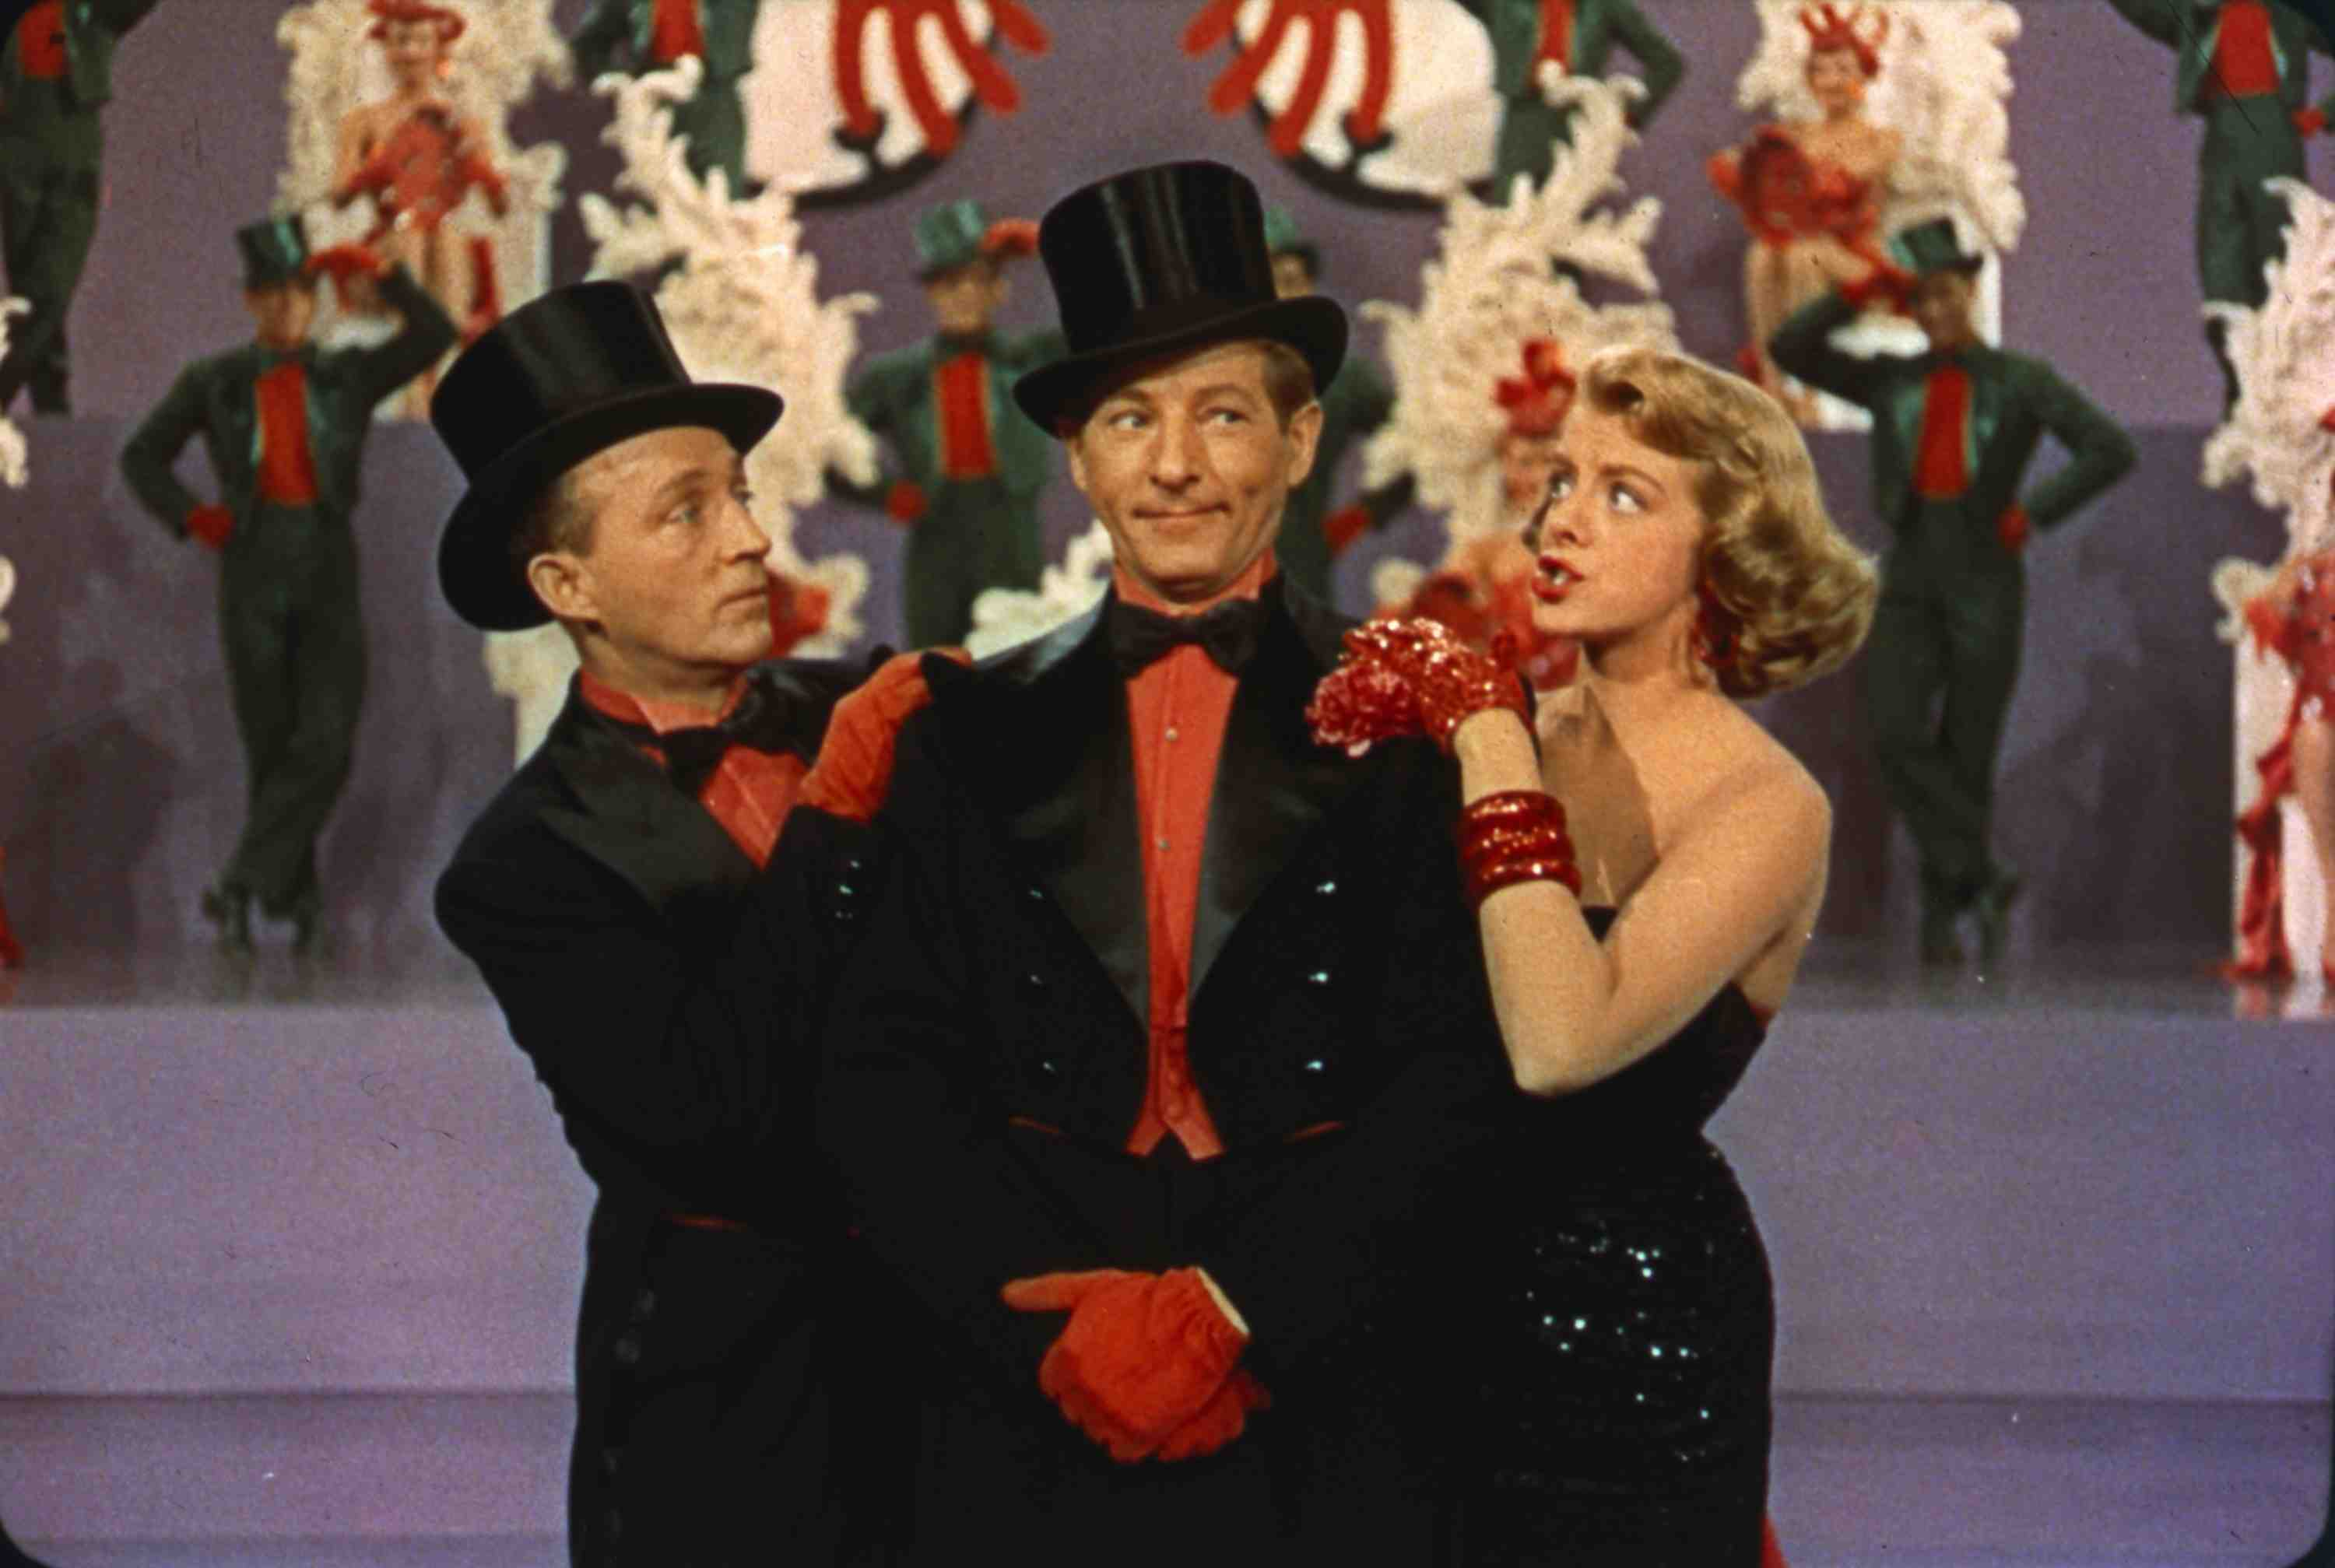 Full Size of Christmas: Christmas Spirit Alive With White At Warner Bros Movie  Bing Crosby ...